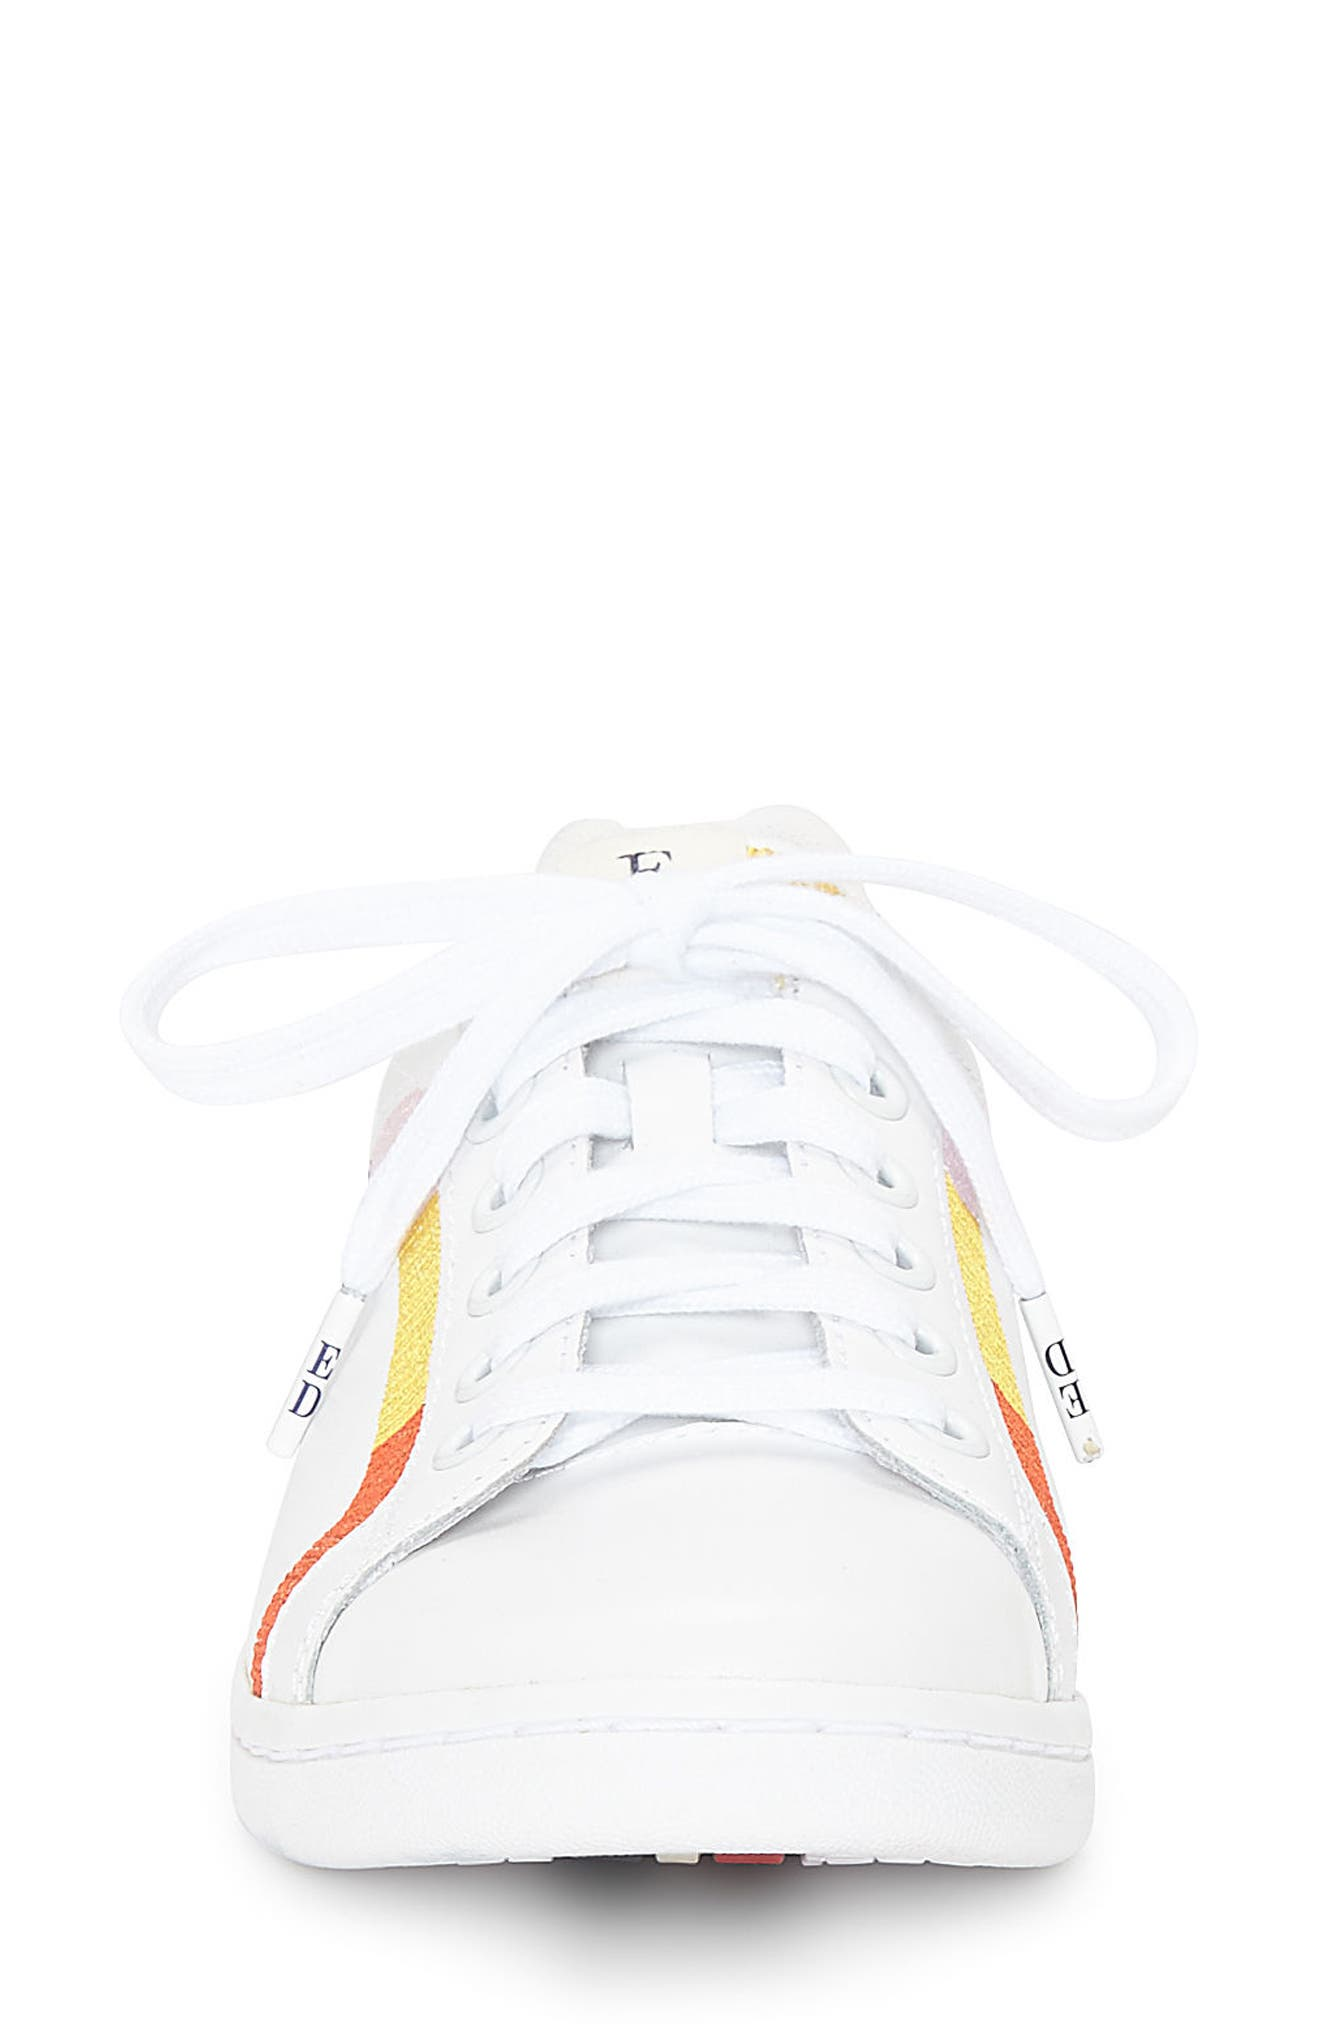 Costella Sneaker,                             Alternate thumbnail 4, color,                             110